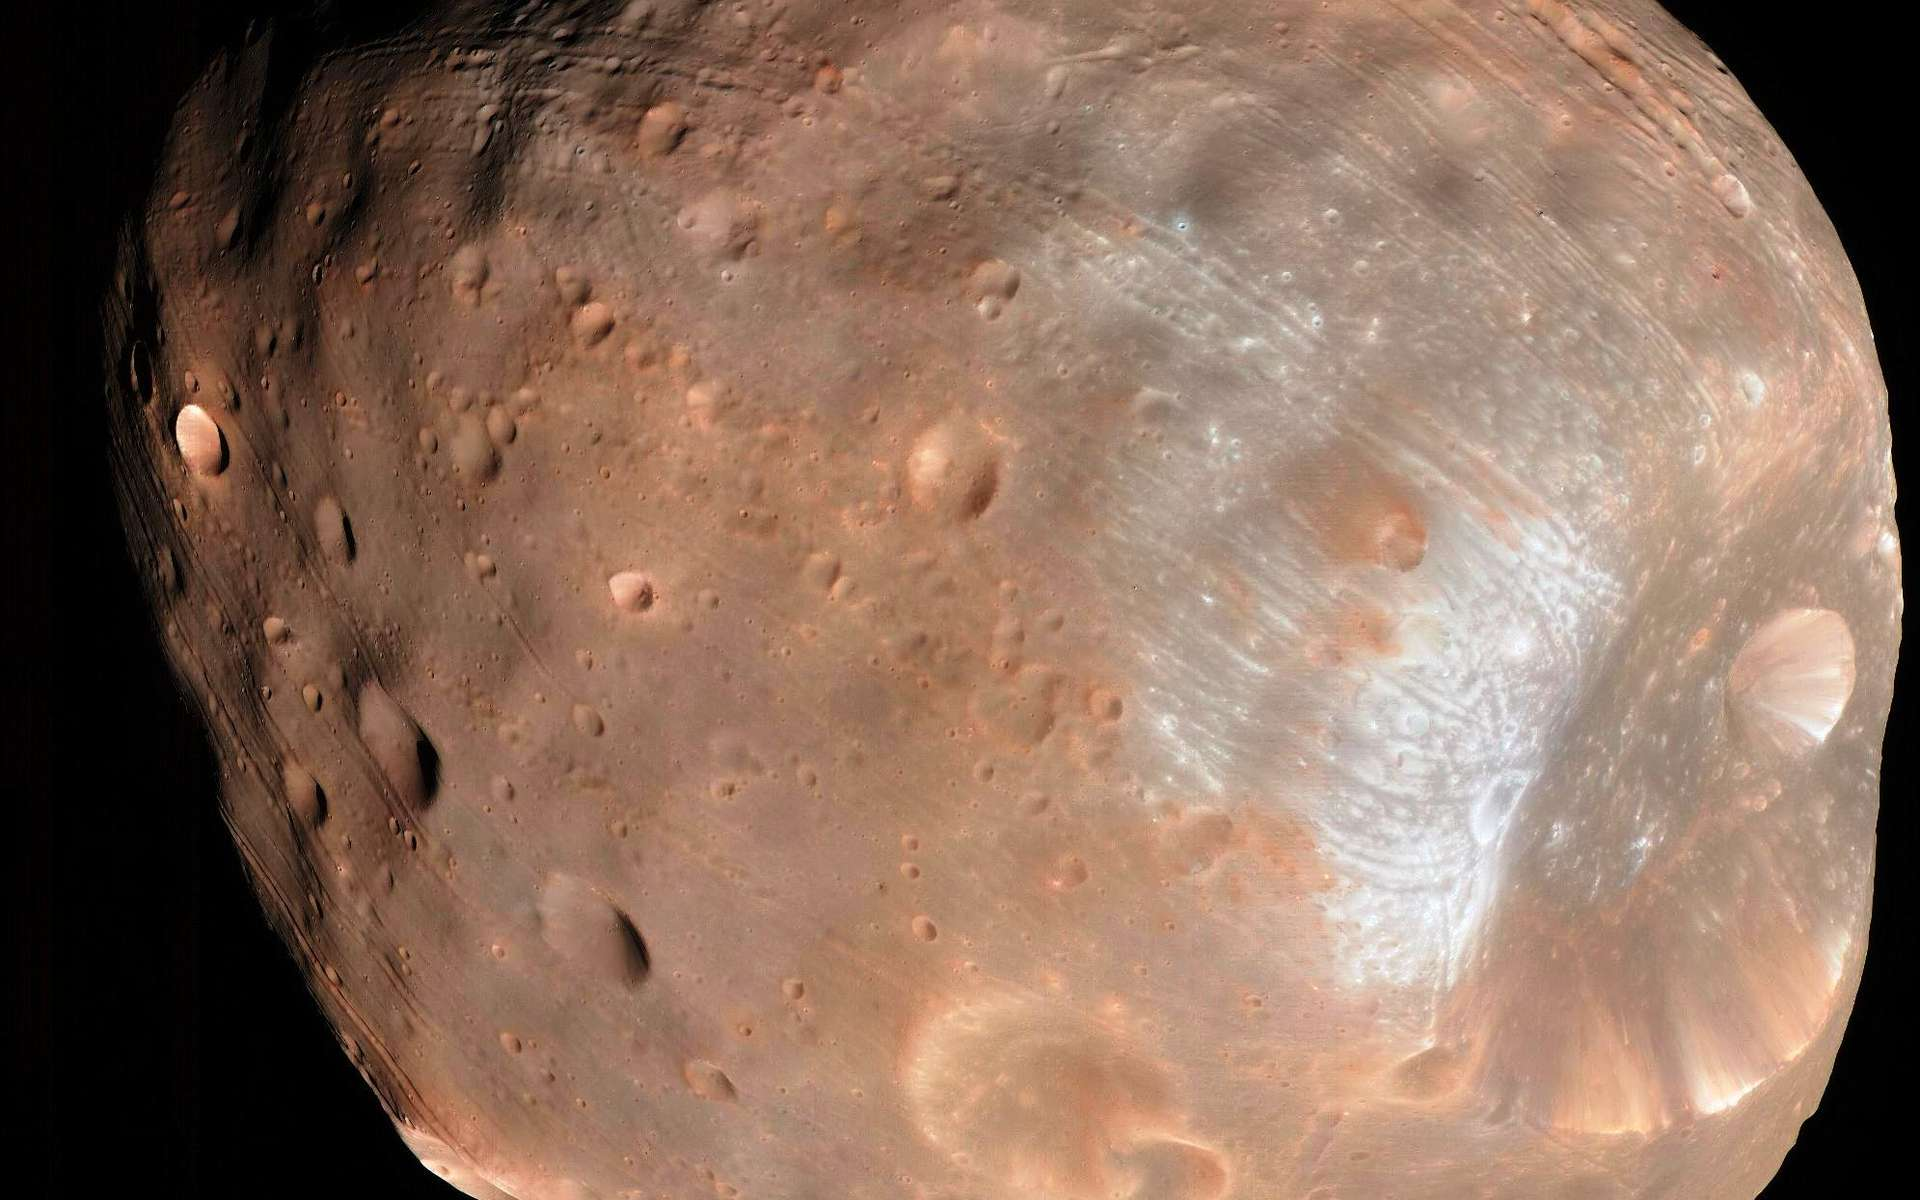 La surface de Phobos, une des lunes de Mars. © Nasa, JPL-Caltech, University of Arizona